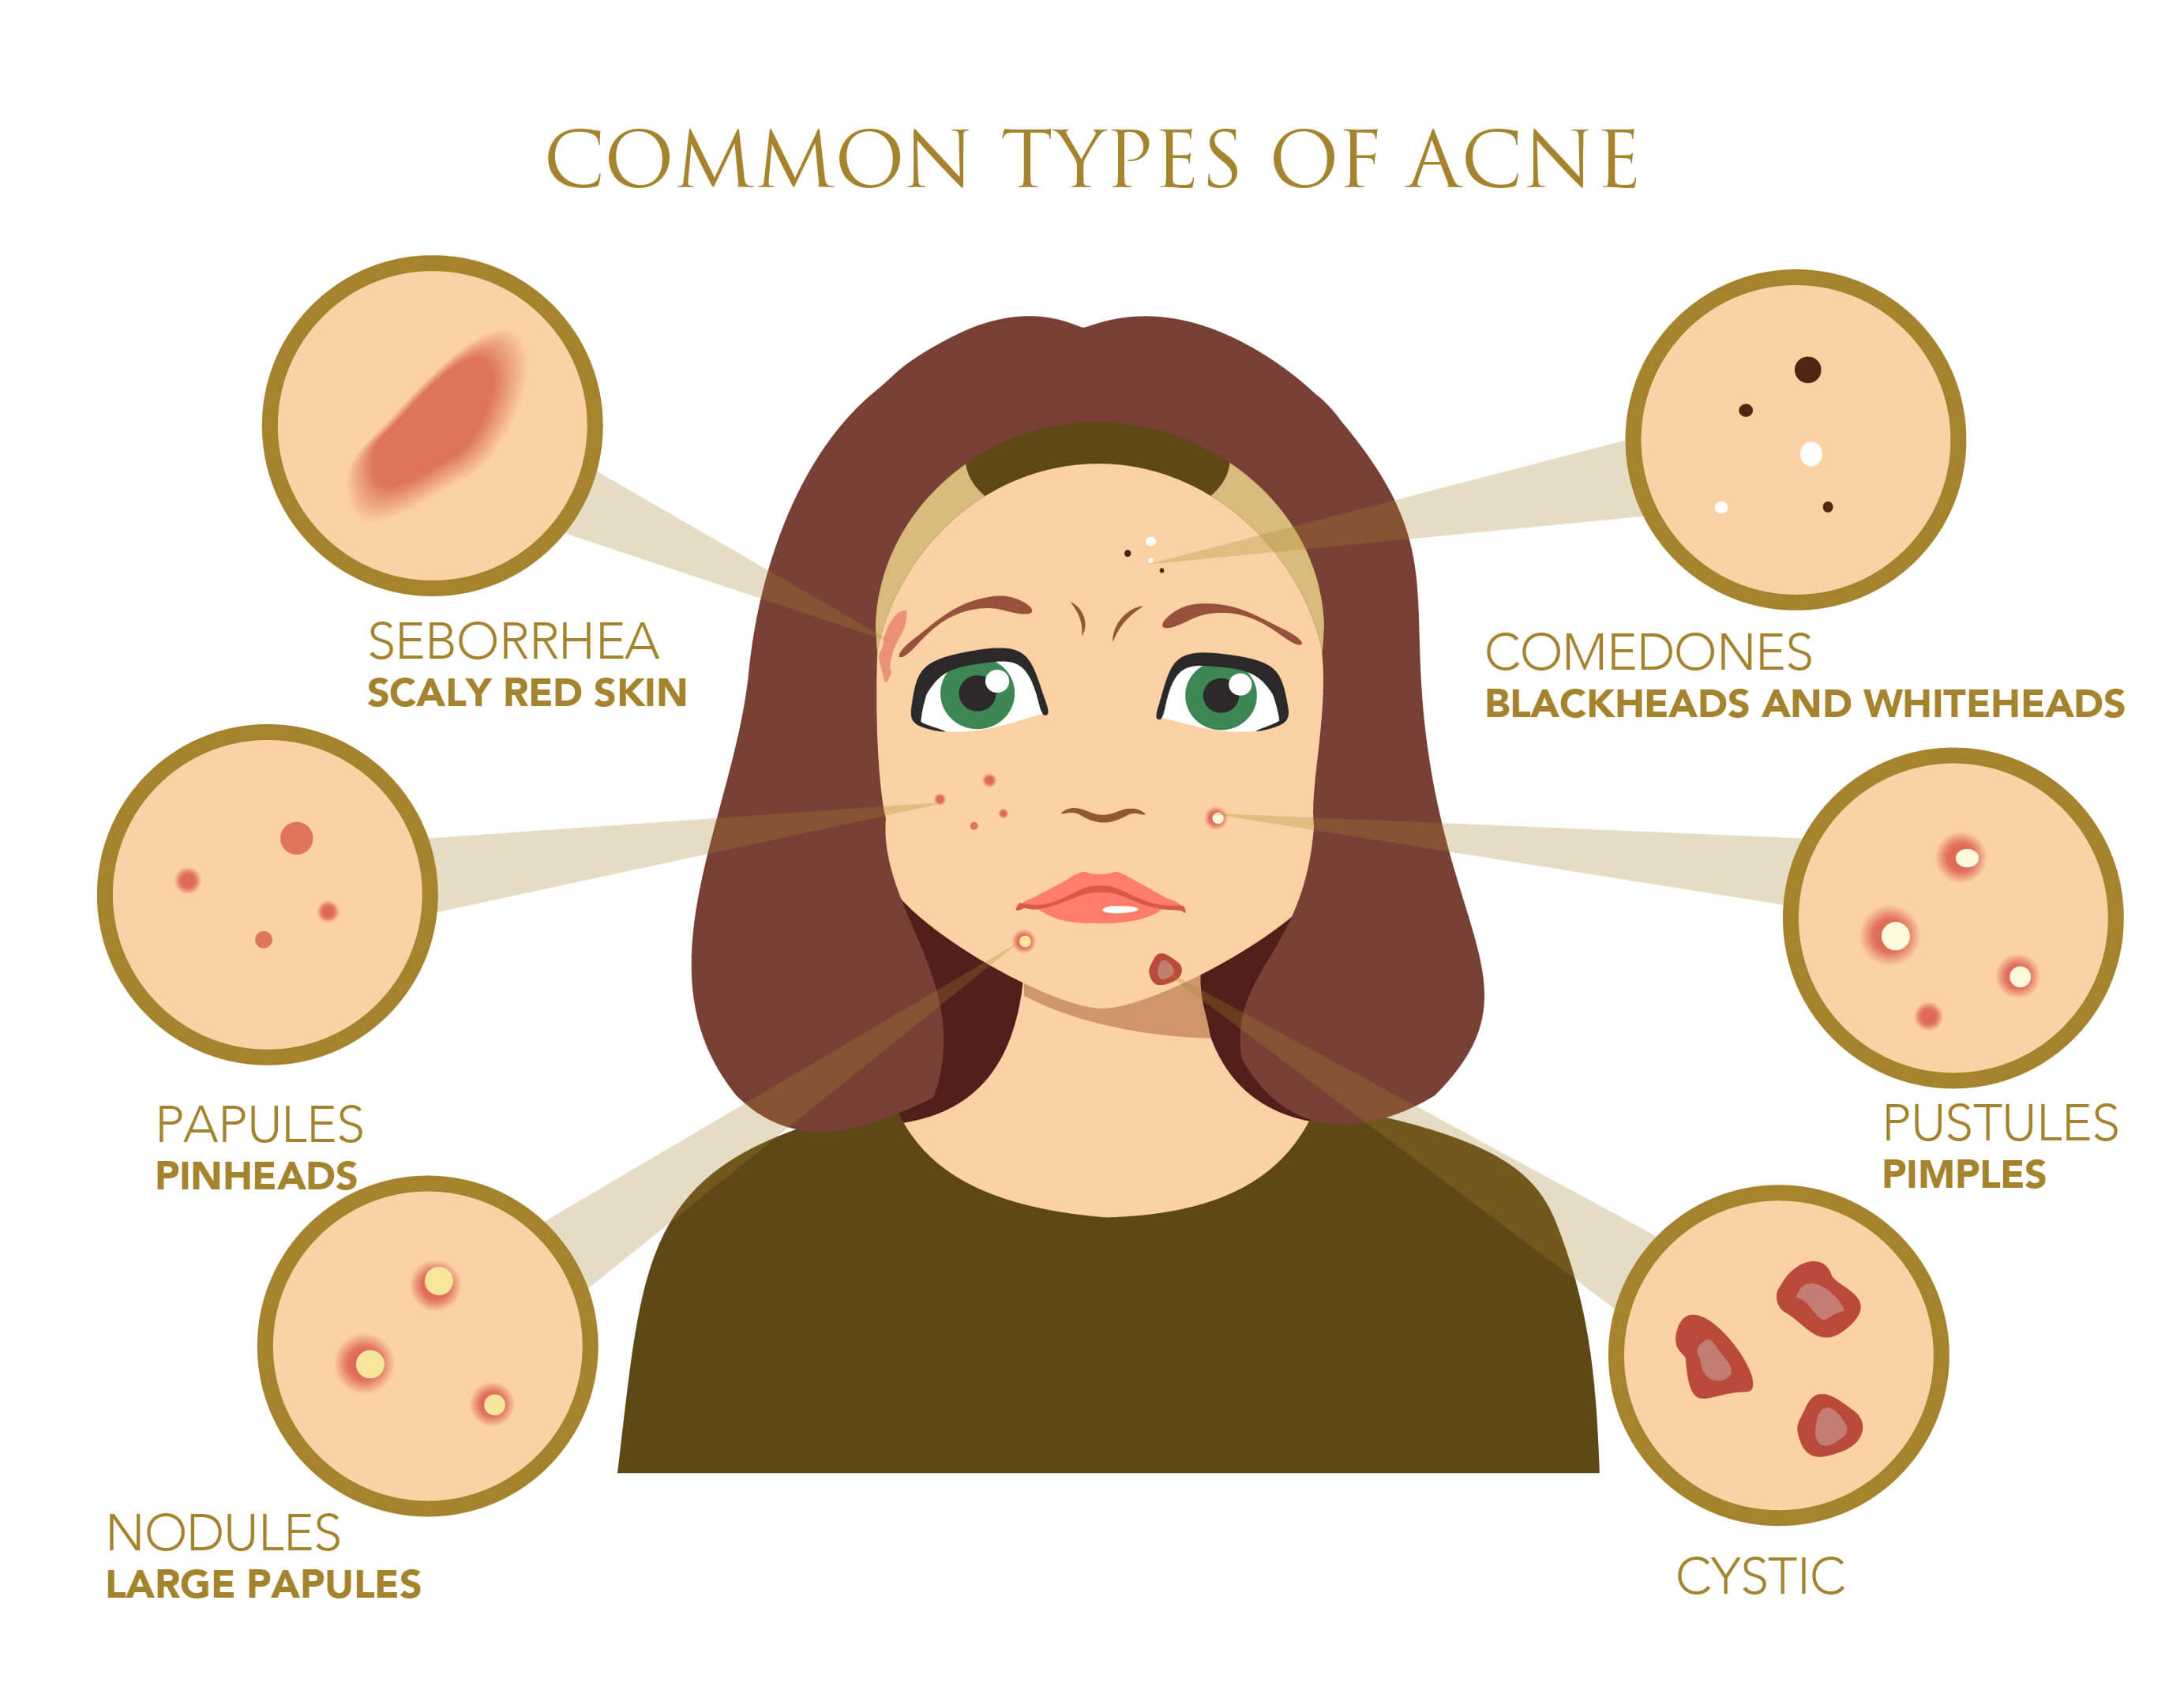 Infographic showing the different types of acne